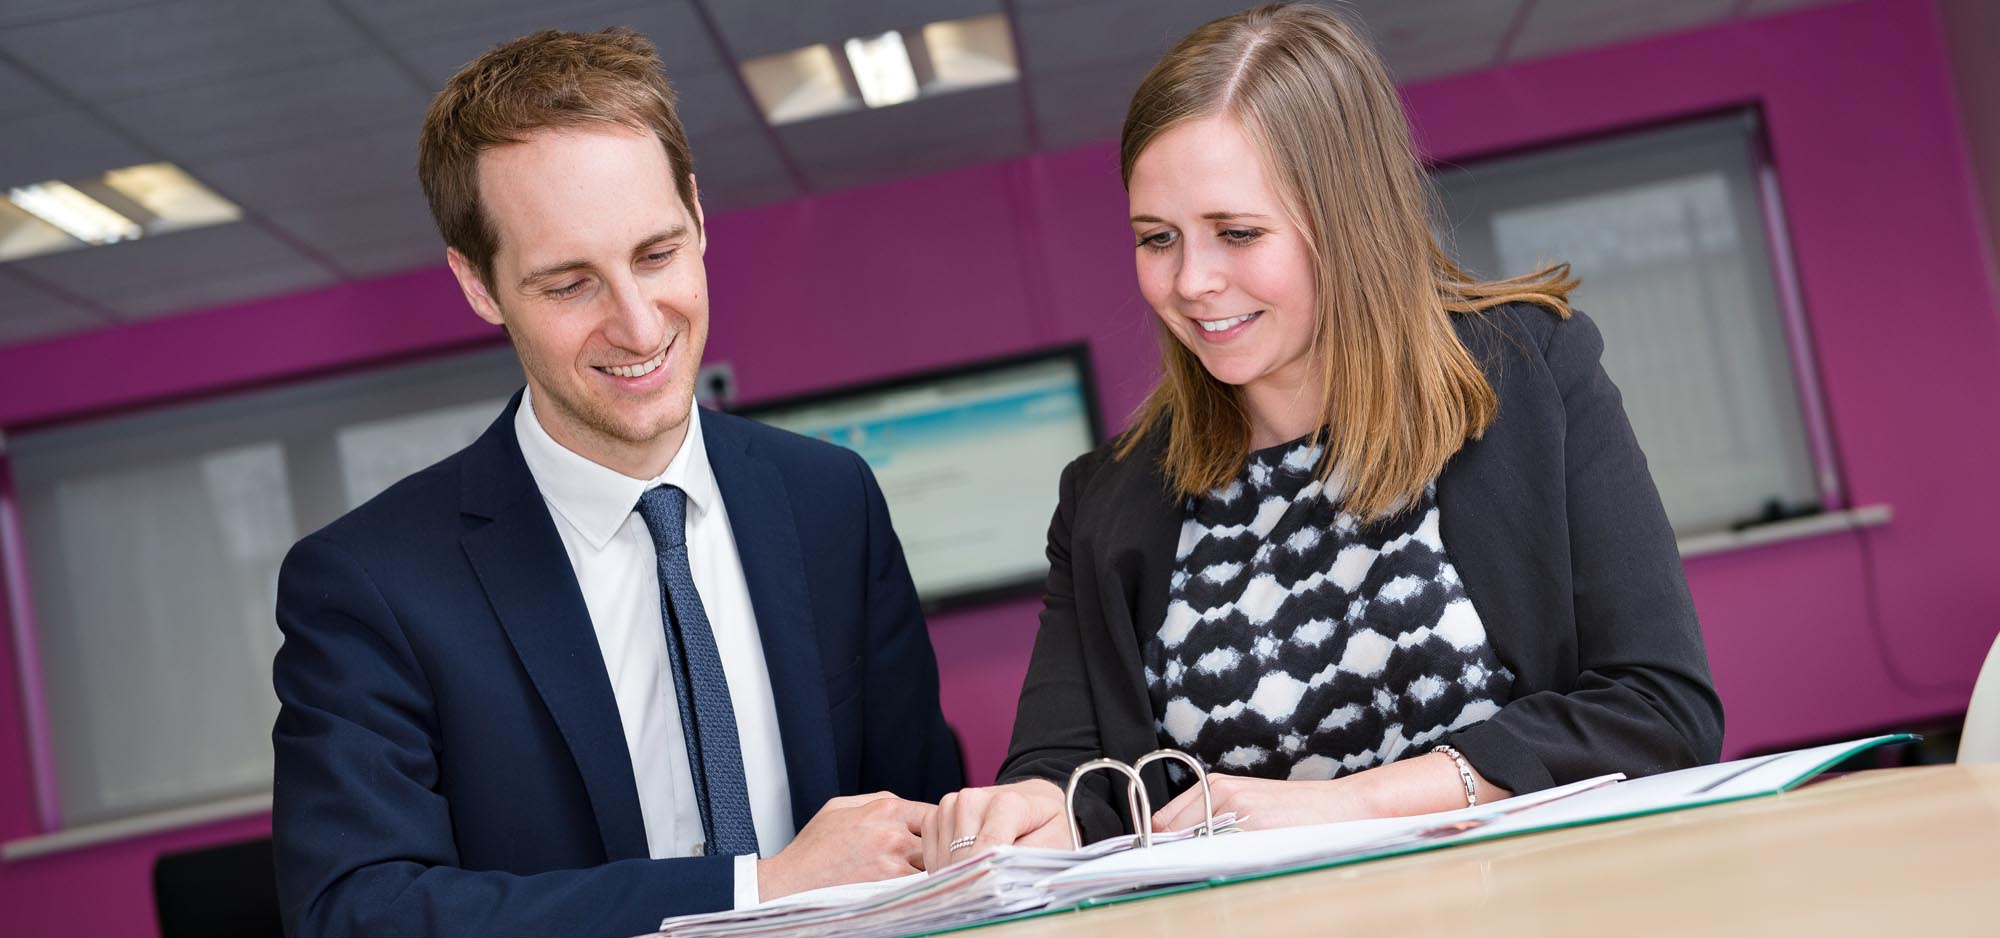 Mr Easter and Miss Edwards looking at documents